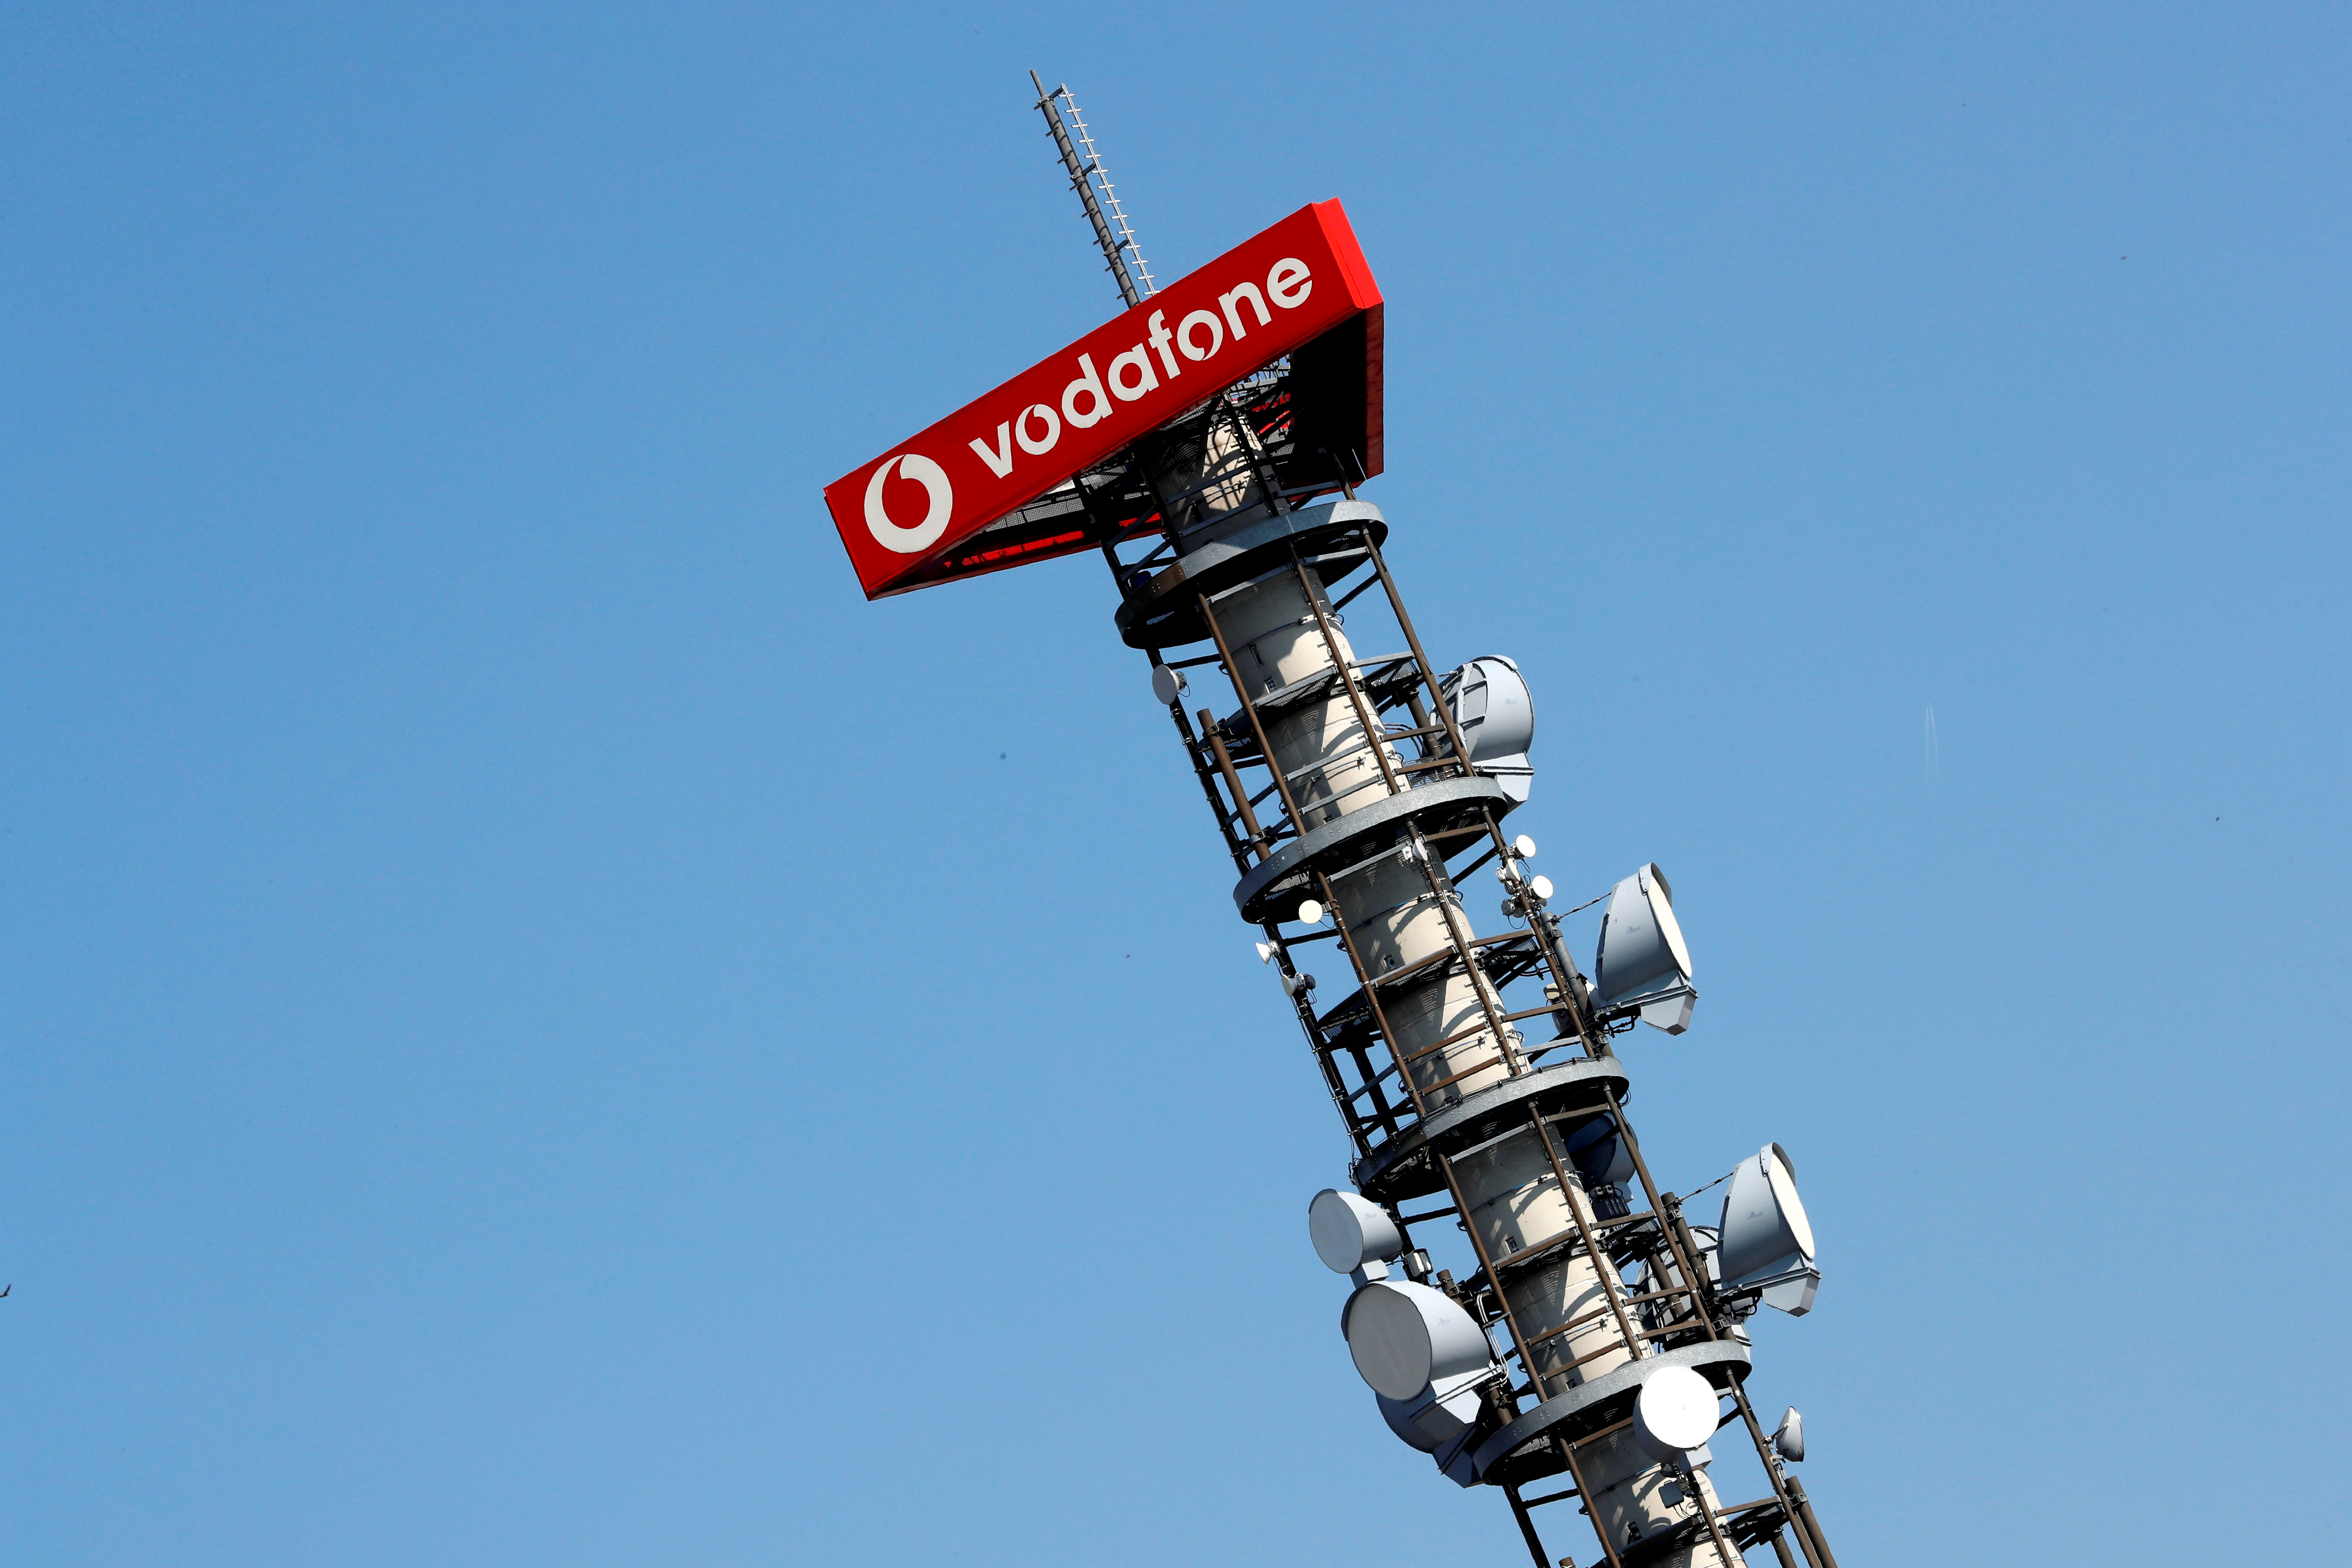 European telcos cash in on tower assets as high-cost 5G investment looms